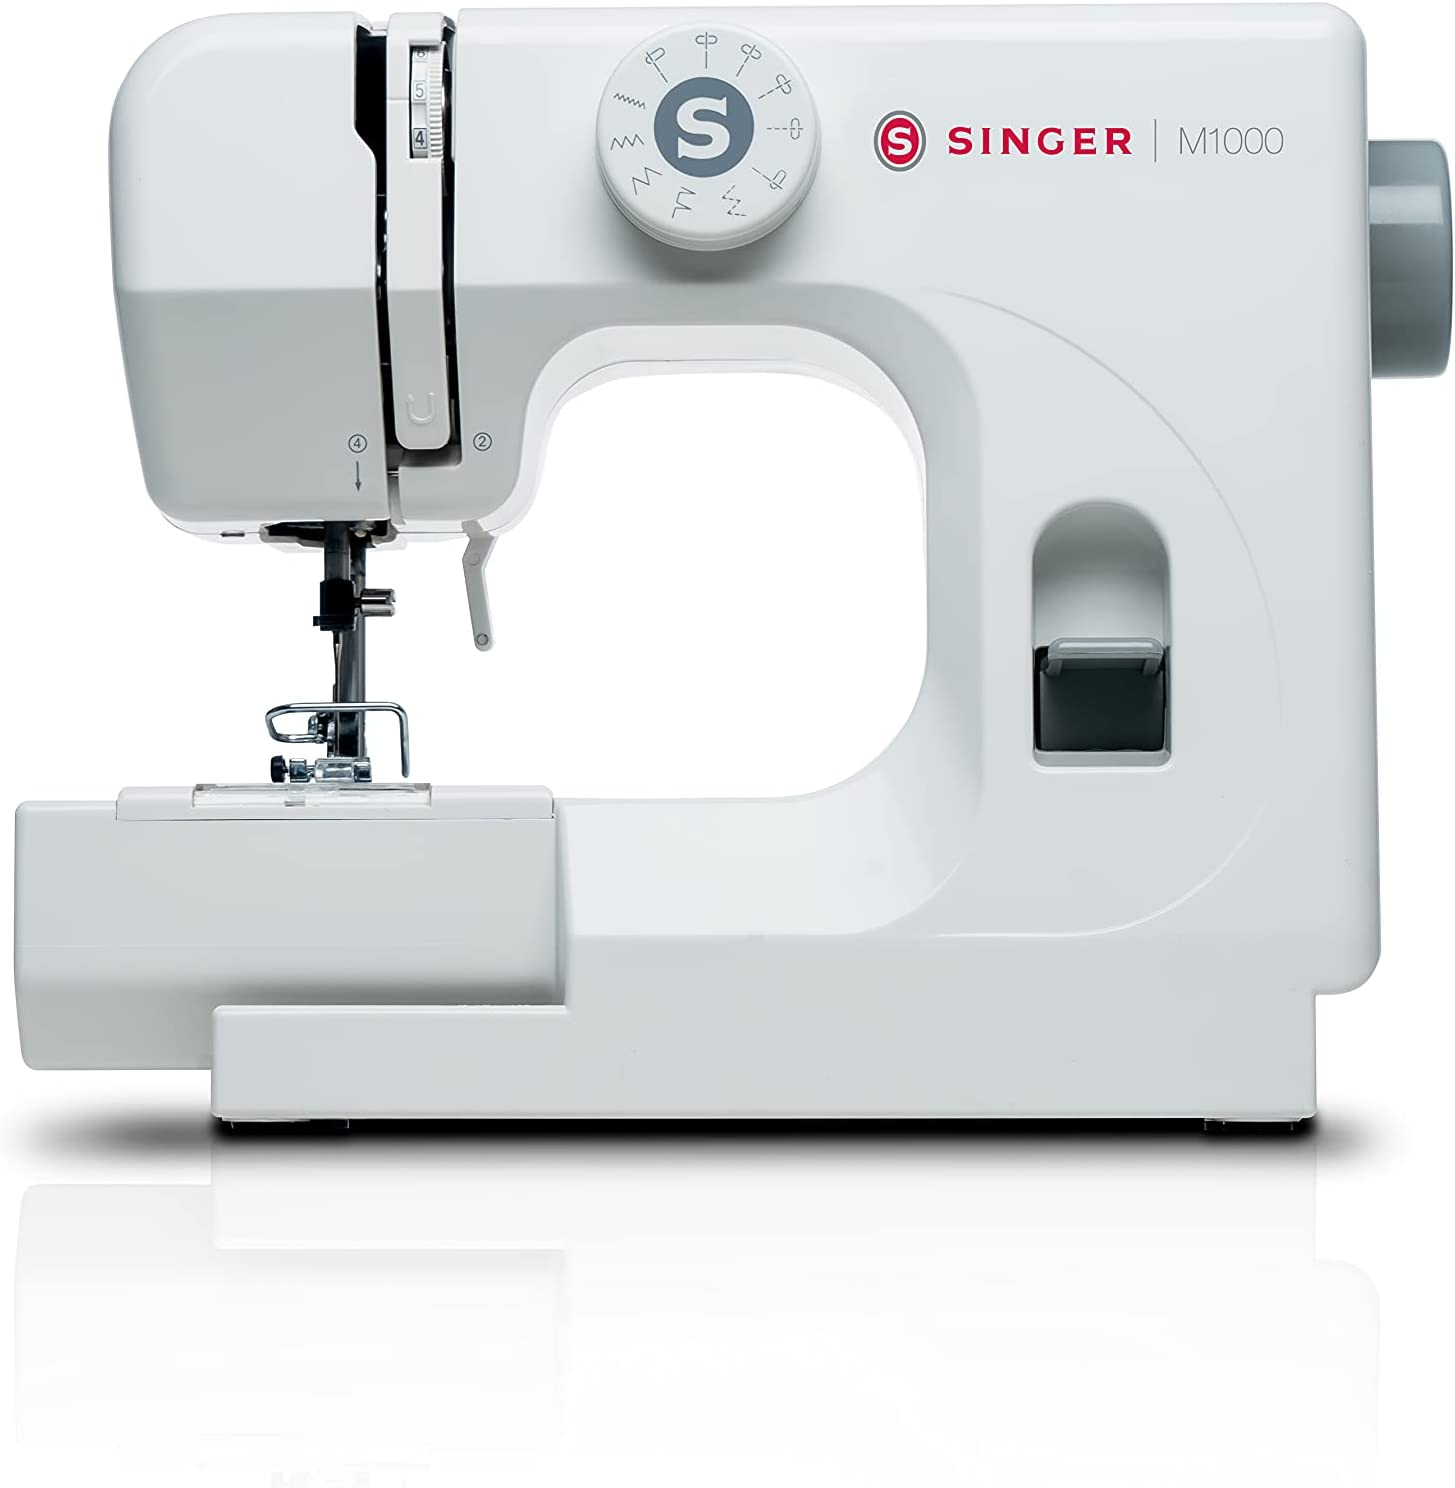 SINGER M1000 Mending Machine Sewing Sales of SALE items from new works White Challenge the lowest price